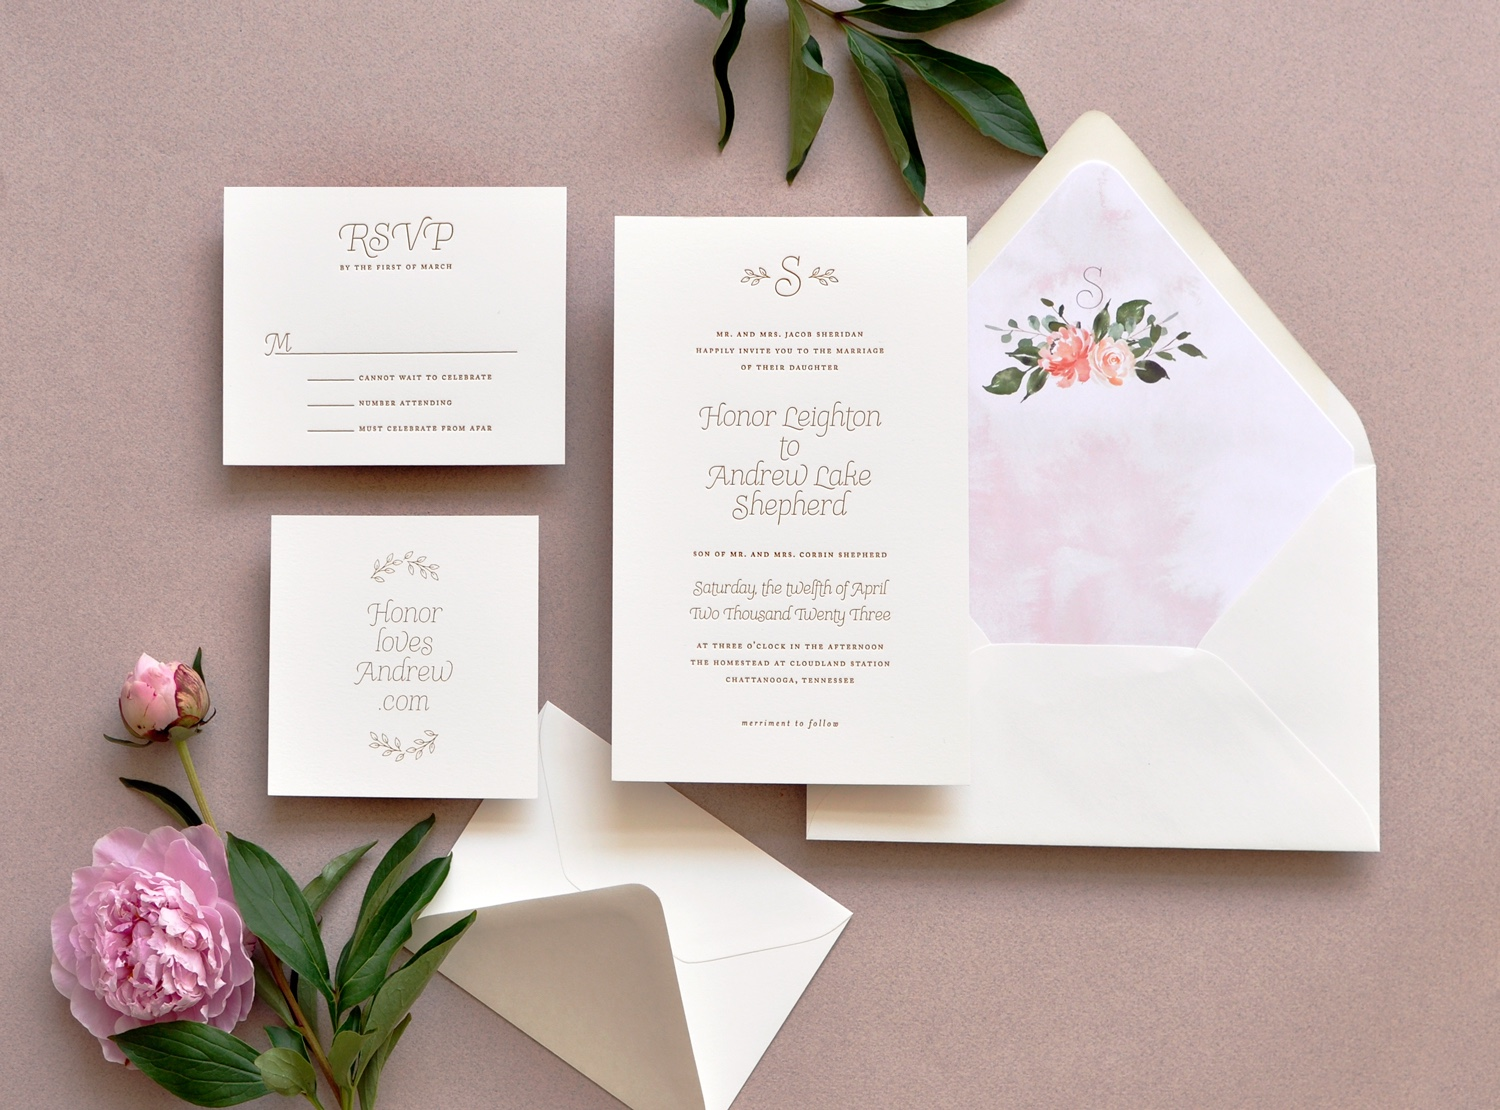 Delicate monogram letterpress wedding invitations in Northern Virginia, DC, and Maryland.